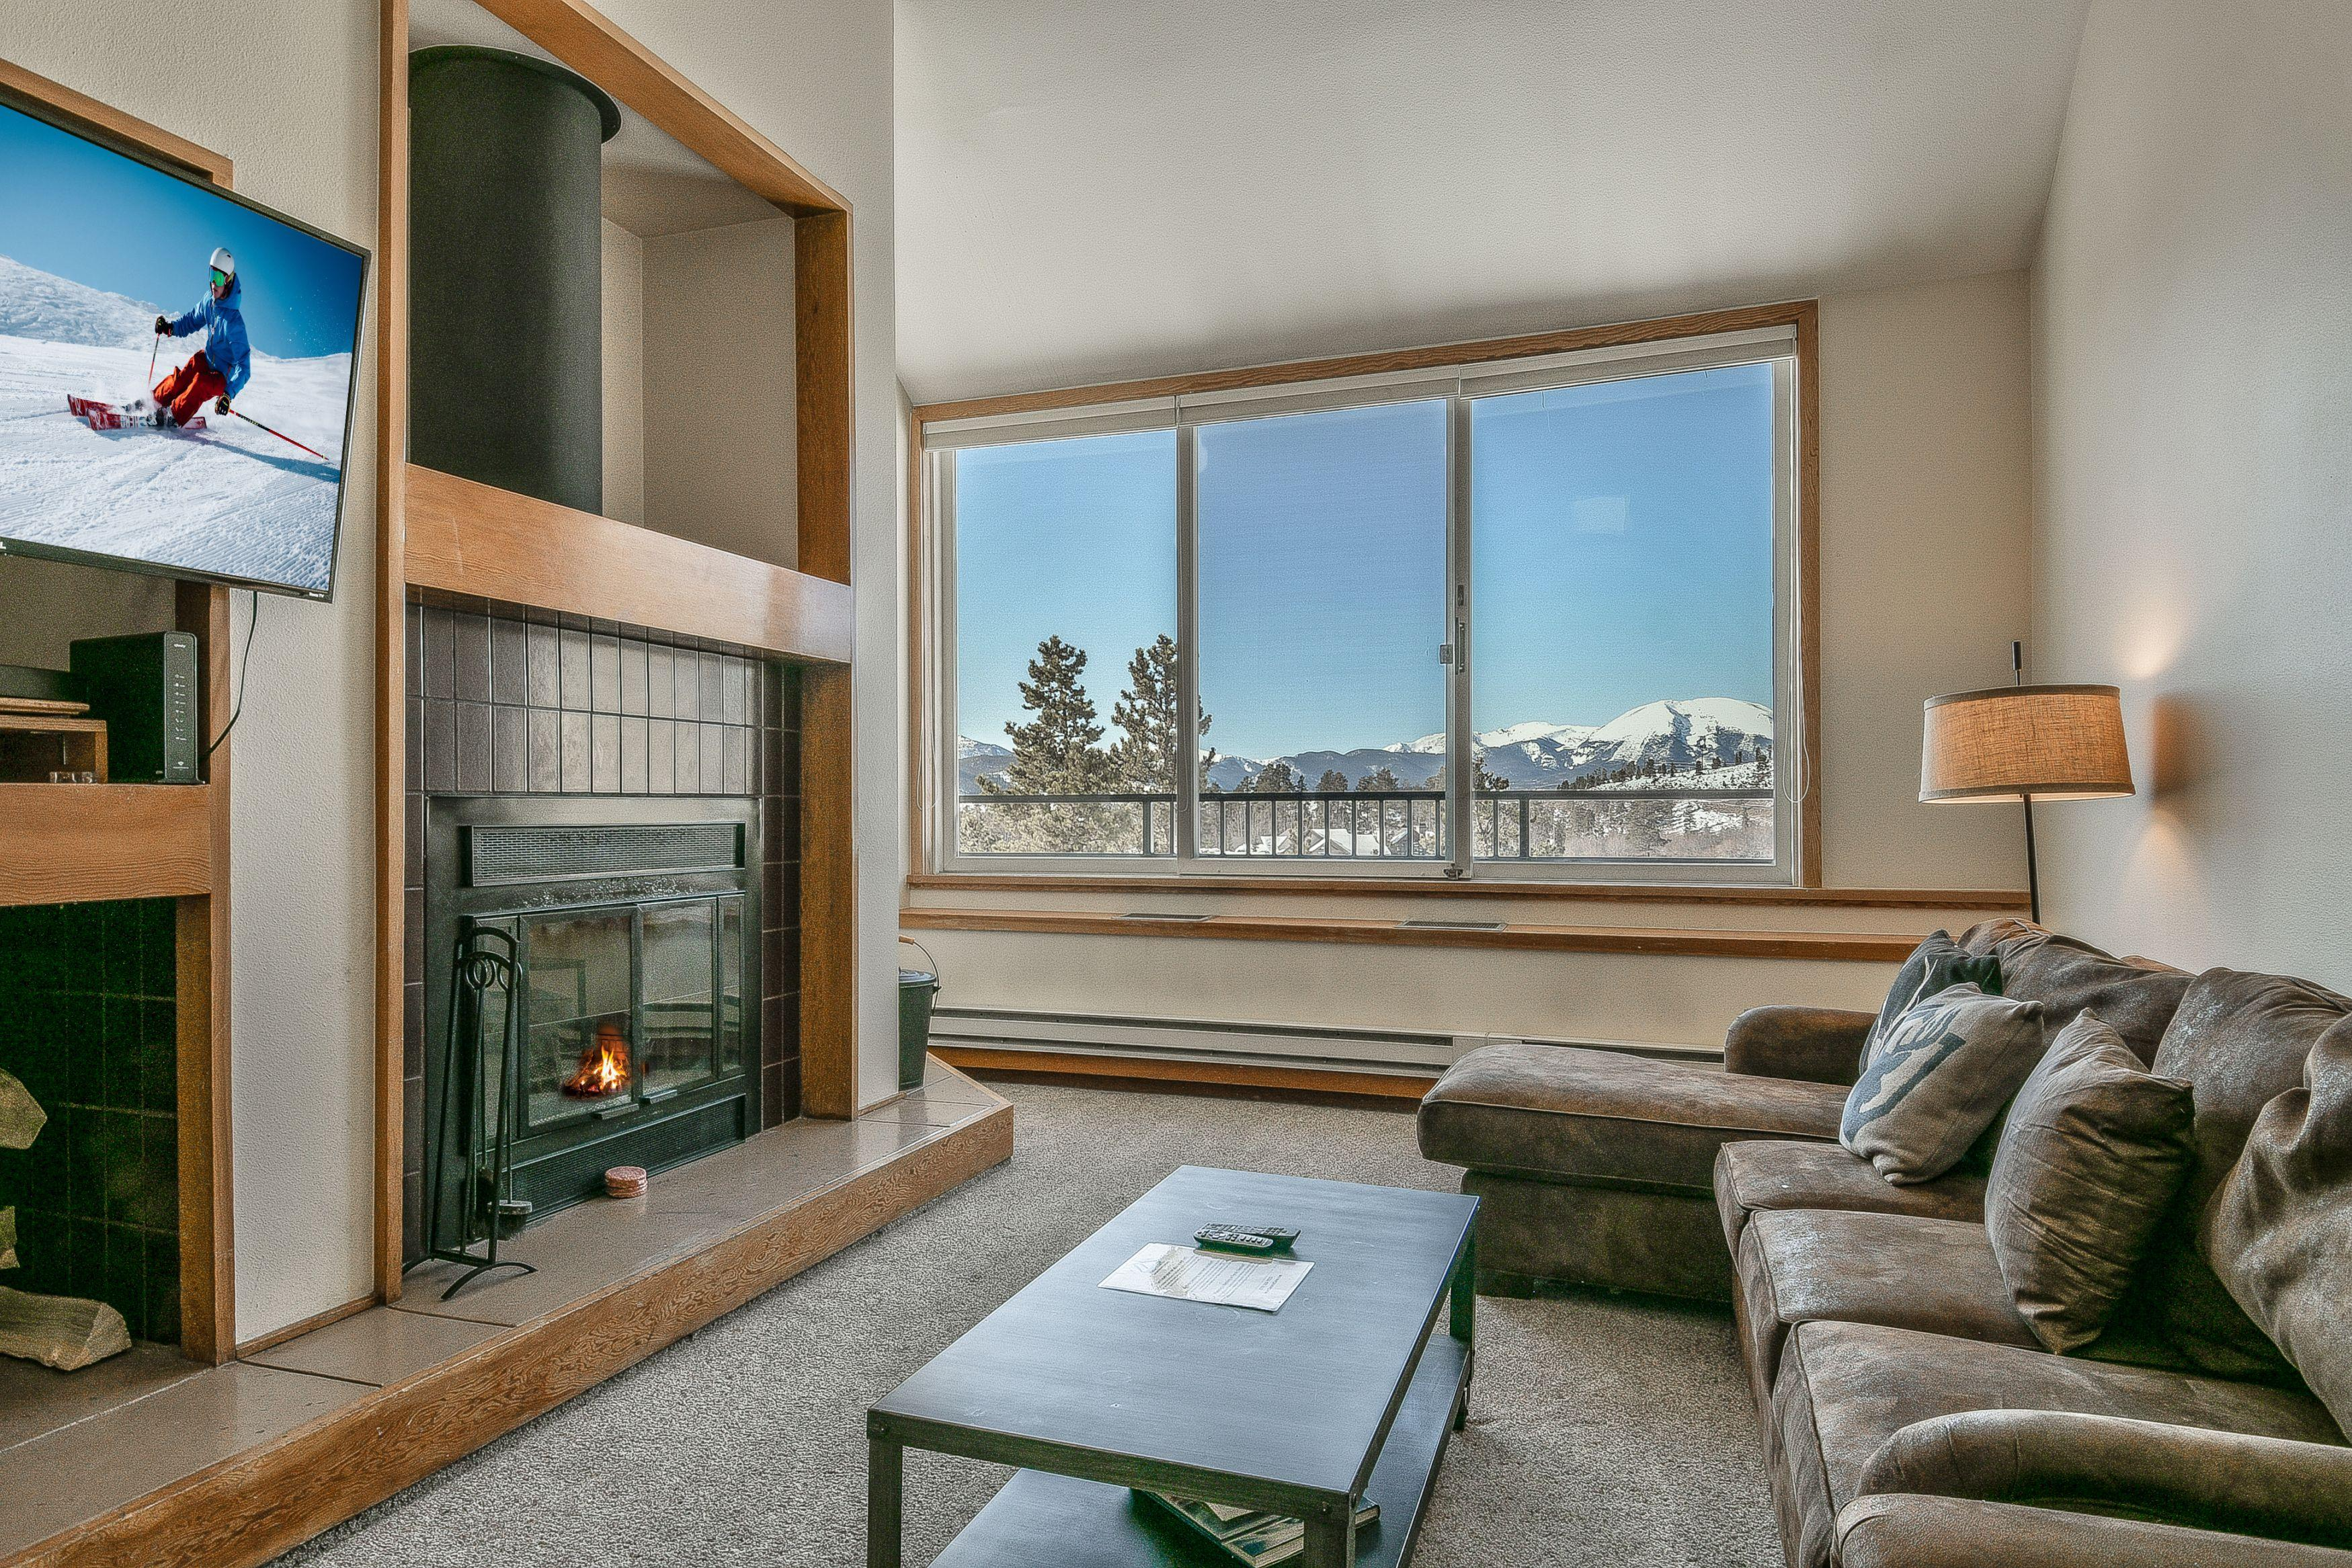 Property Image 2 - Oversized 1 bd condo on Shuttle route with Mountain views